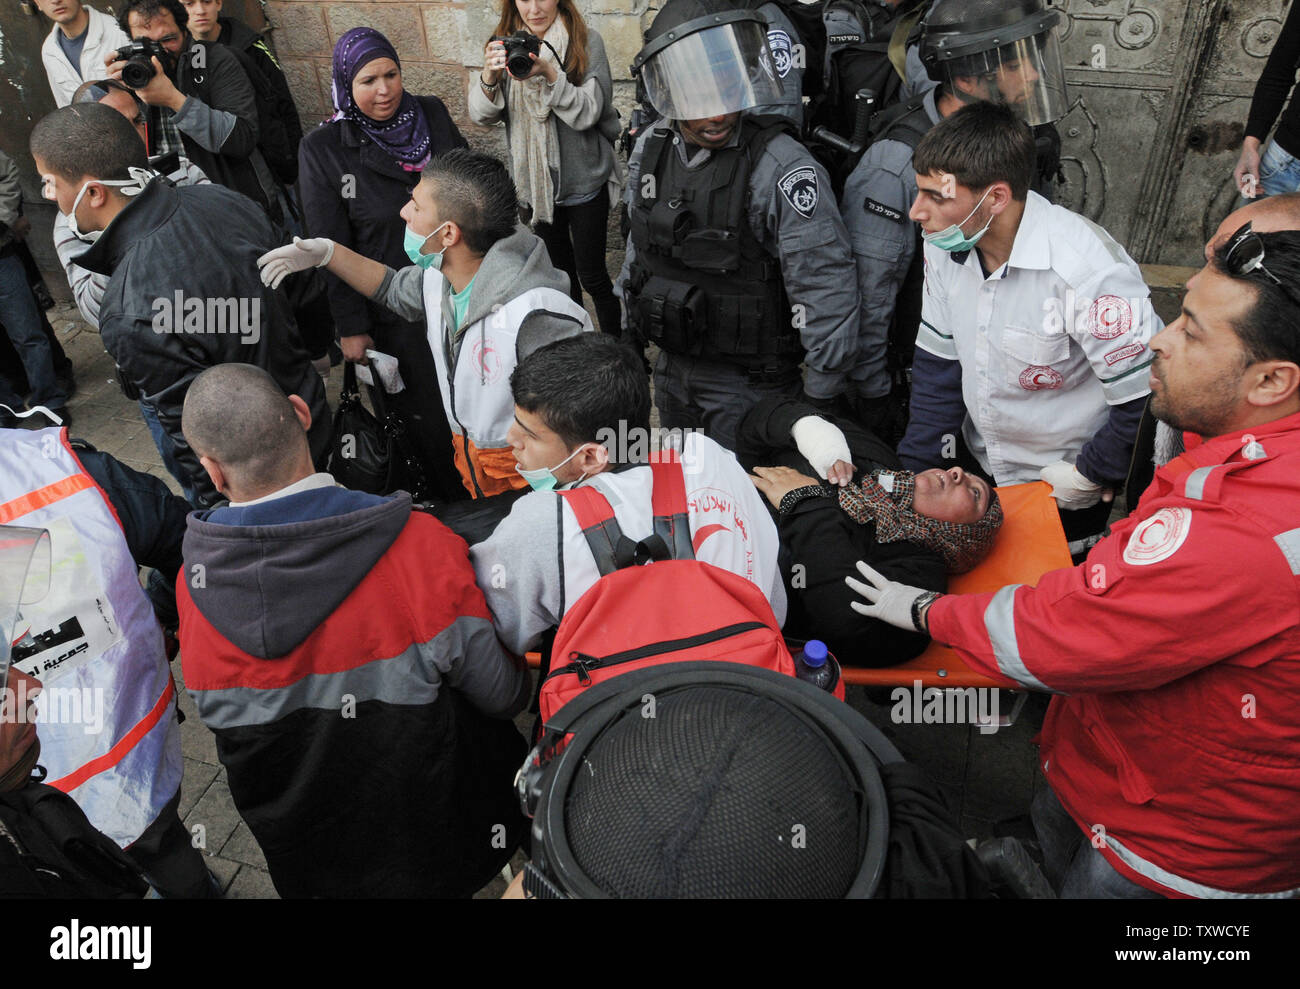 Palestinian medics evacuate a wounded Palestinian protester during a demonstration marking Land Day  near the Damascus Gate in East Jerusalem, March 30, 2012. Palestinians chanted slogans against the Israeli occupation and the continued confiscation of Palestinian land.  UPI/Debbie Hill - Stock Image